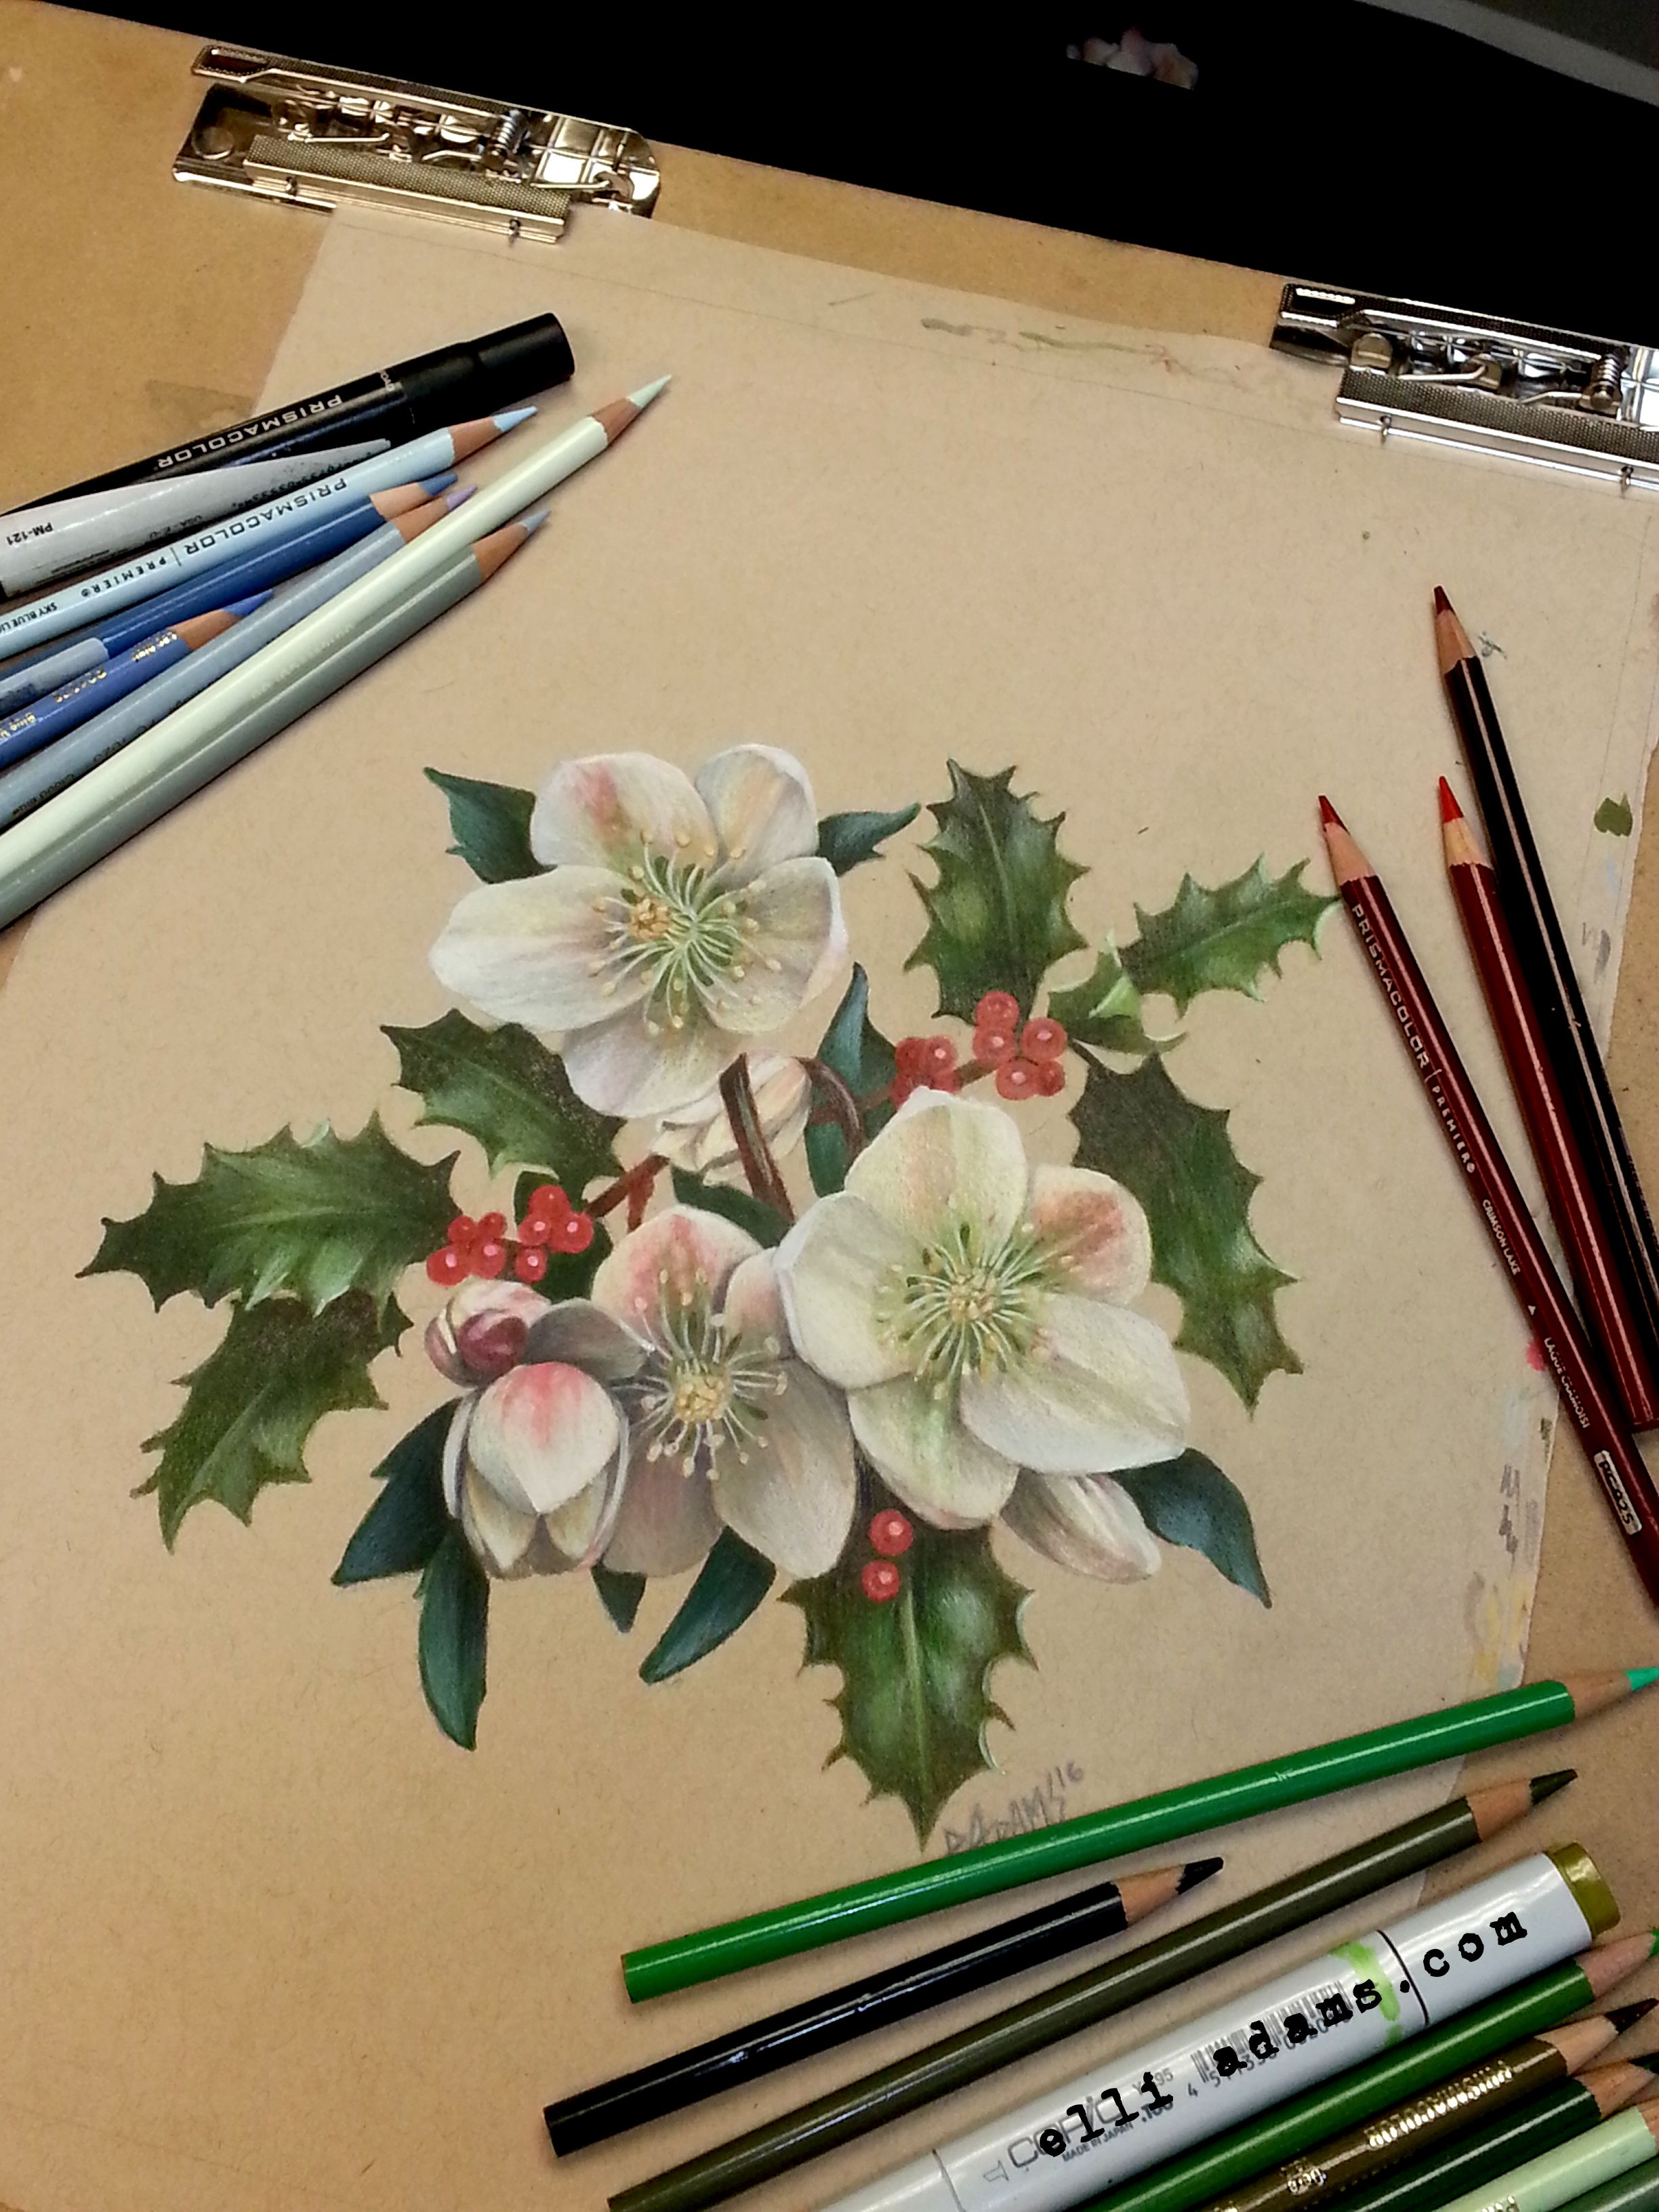 Christmas Rose Or Helleborus Niger In Colored Pencil And Marker On Toned Drawing Paper Available Color Pencil Art Color Pencil Drawing Colored Pencil Artwork